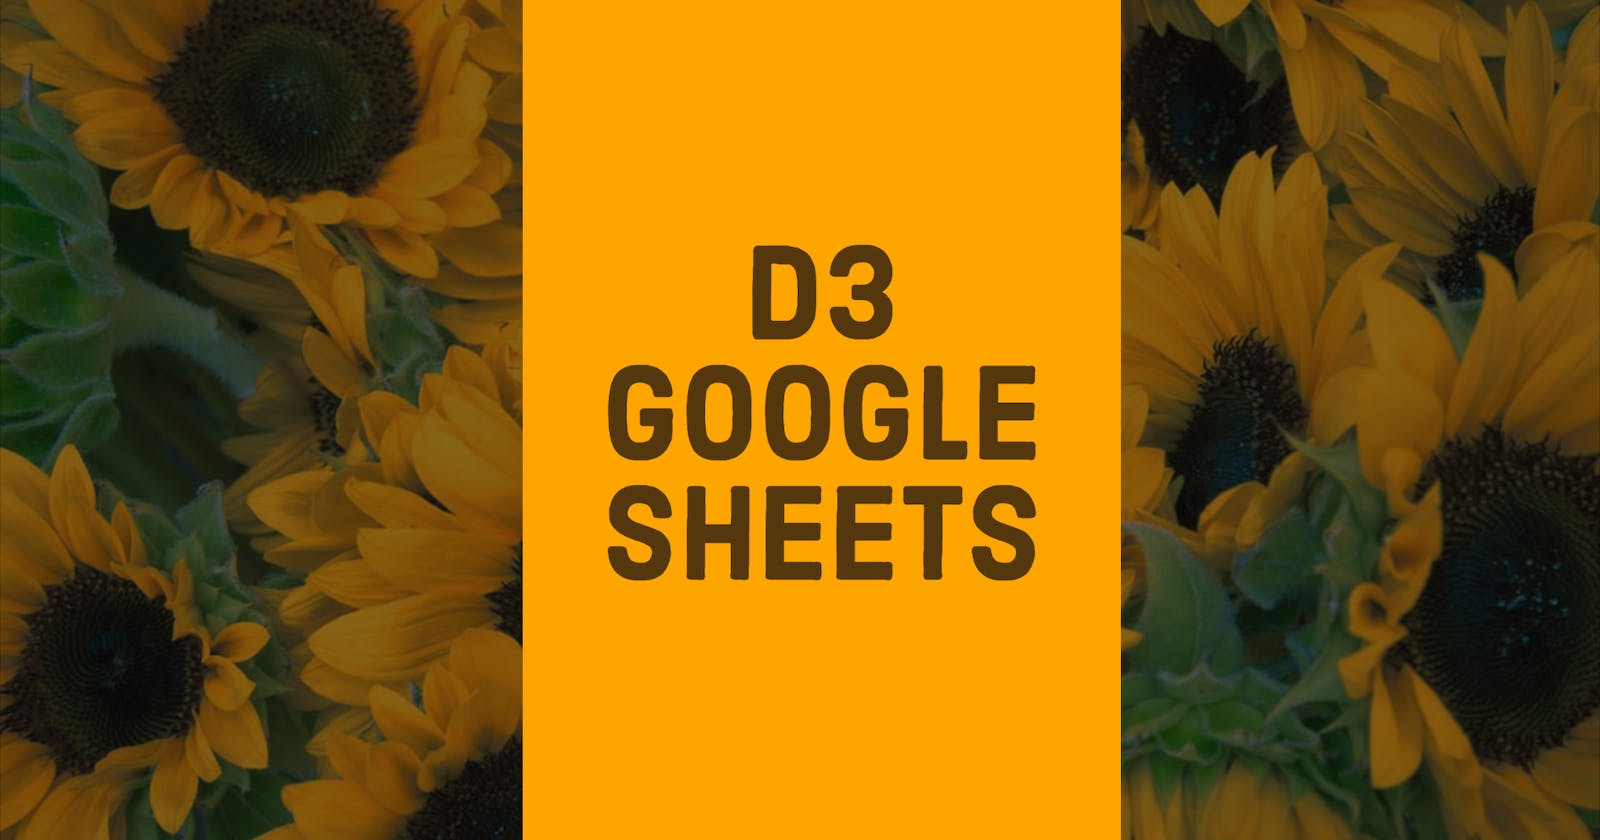 Visualizing Google Sheets Data in D3